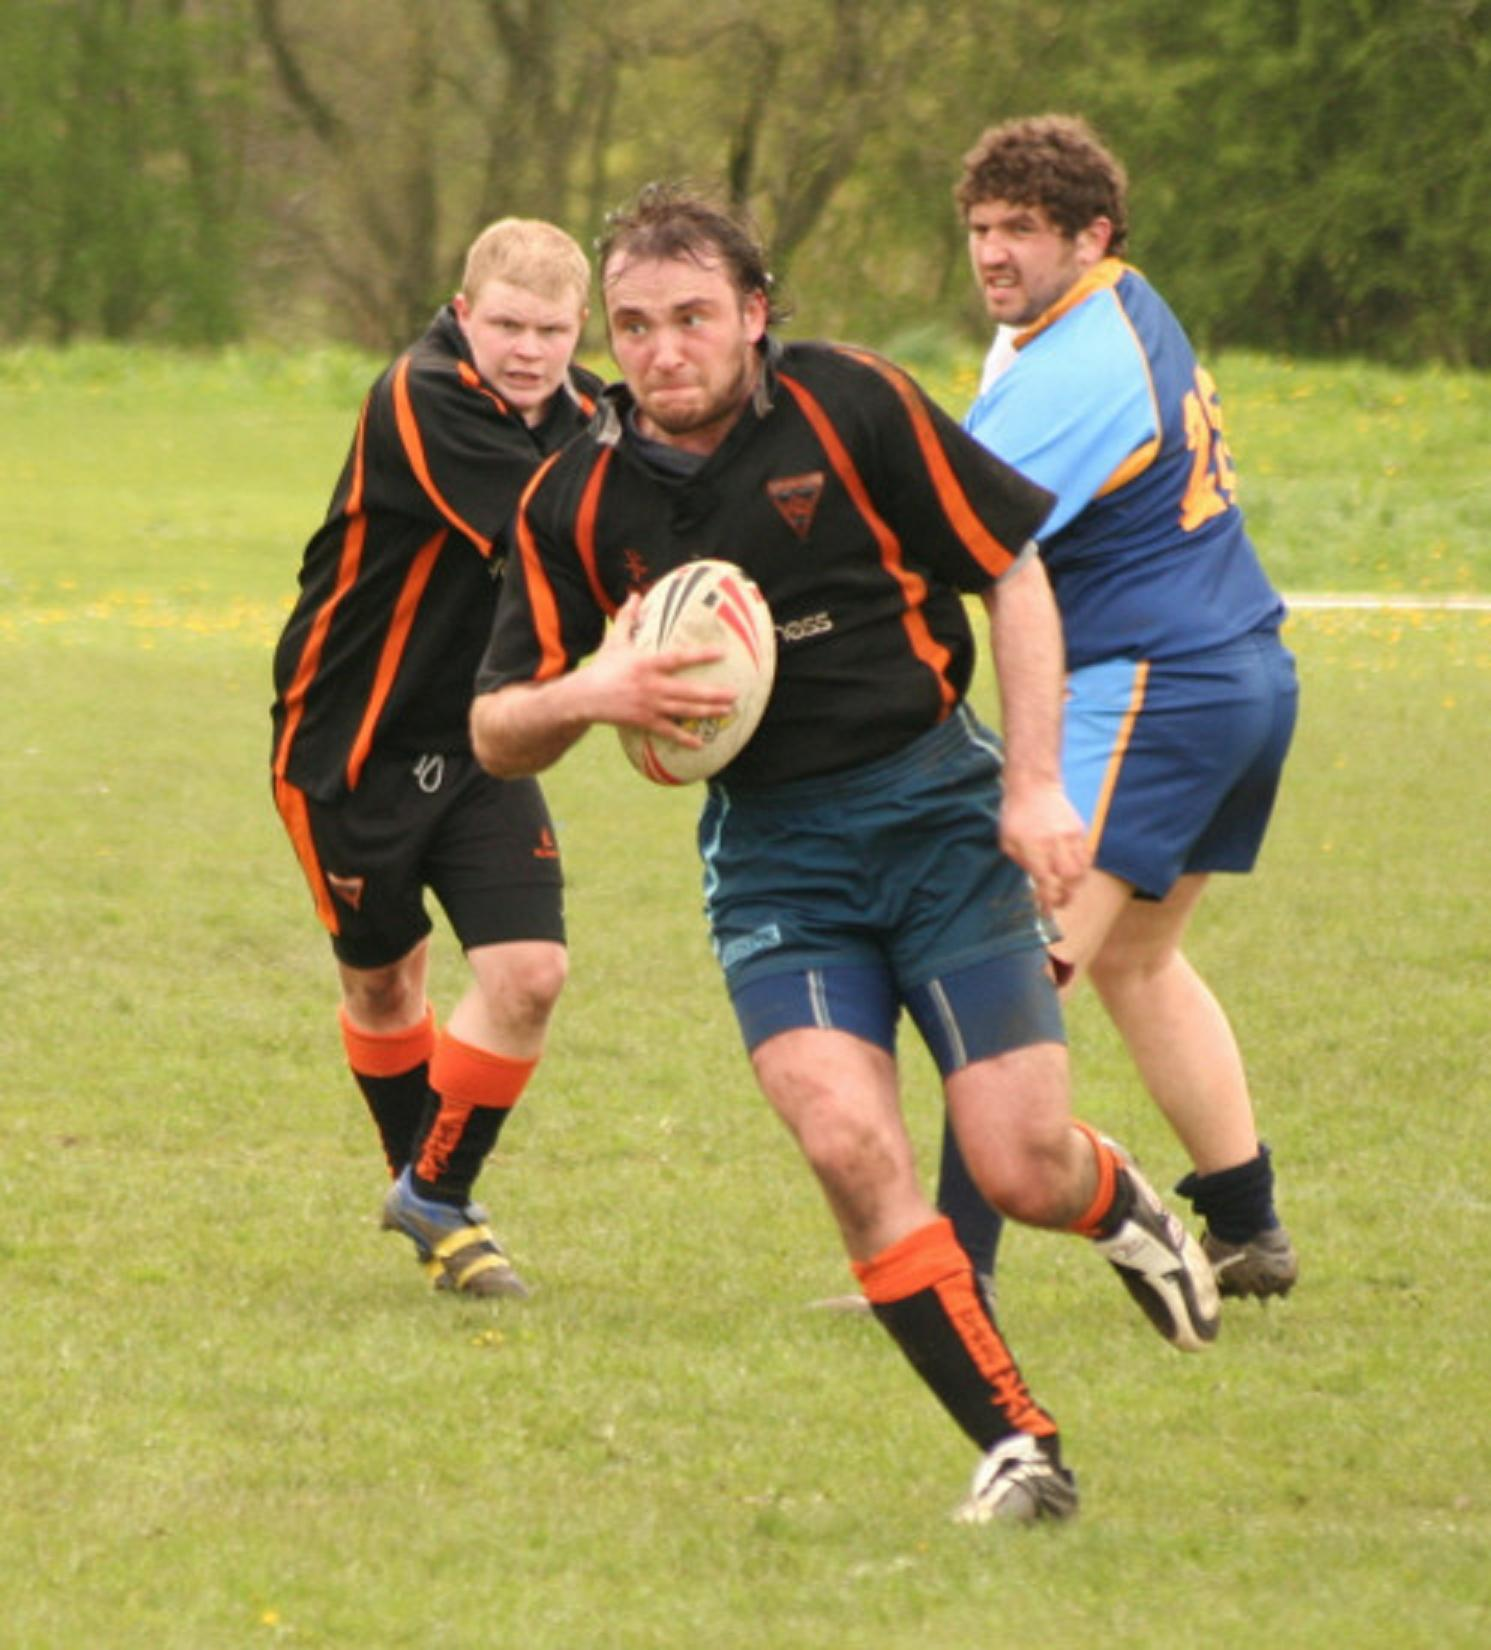 Durham Tigers Rugby League Club is seeking new players